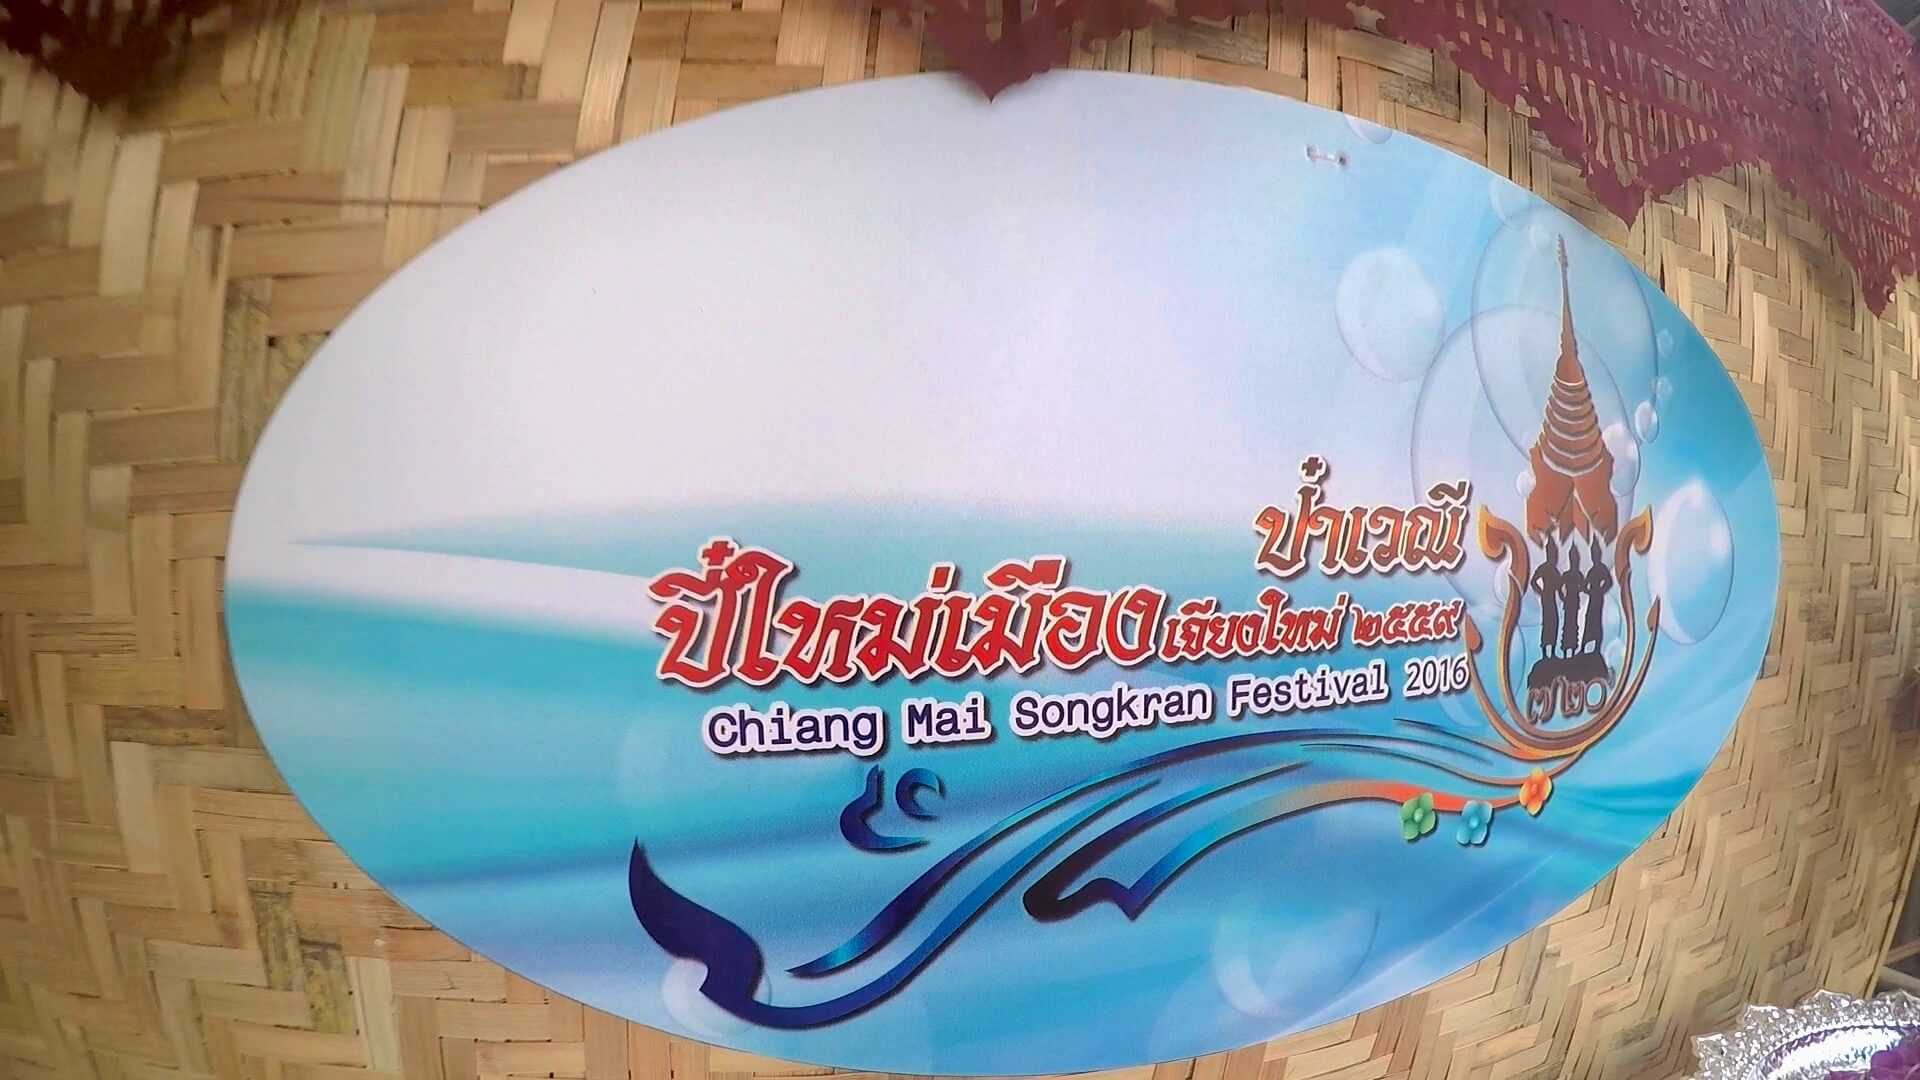 Wondering where to celebrate songkran? Chiang Mai is a great place